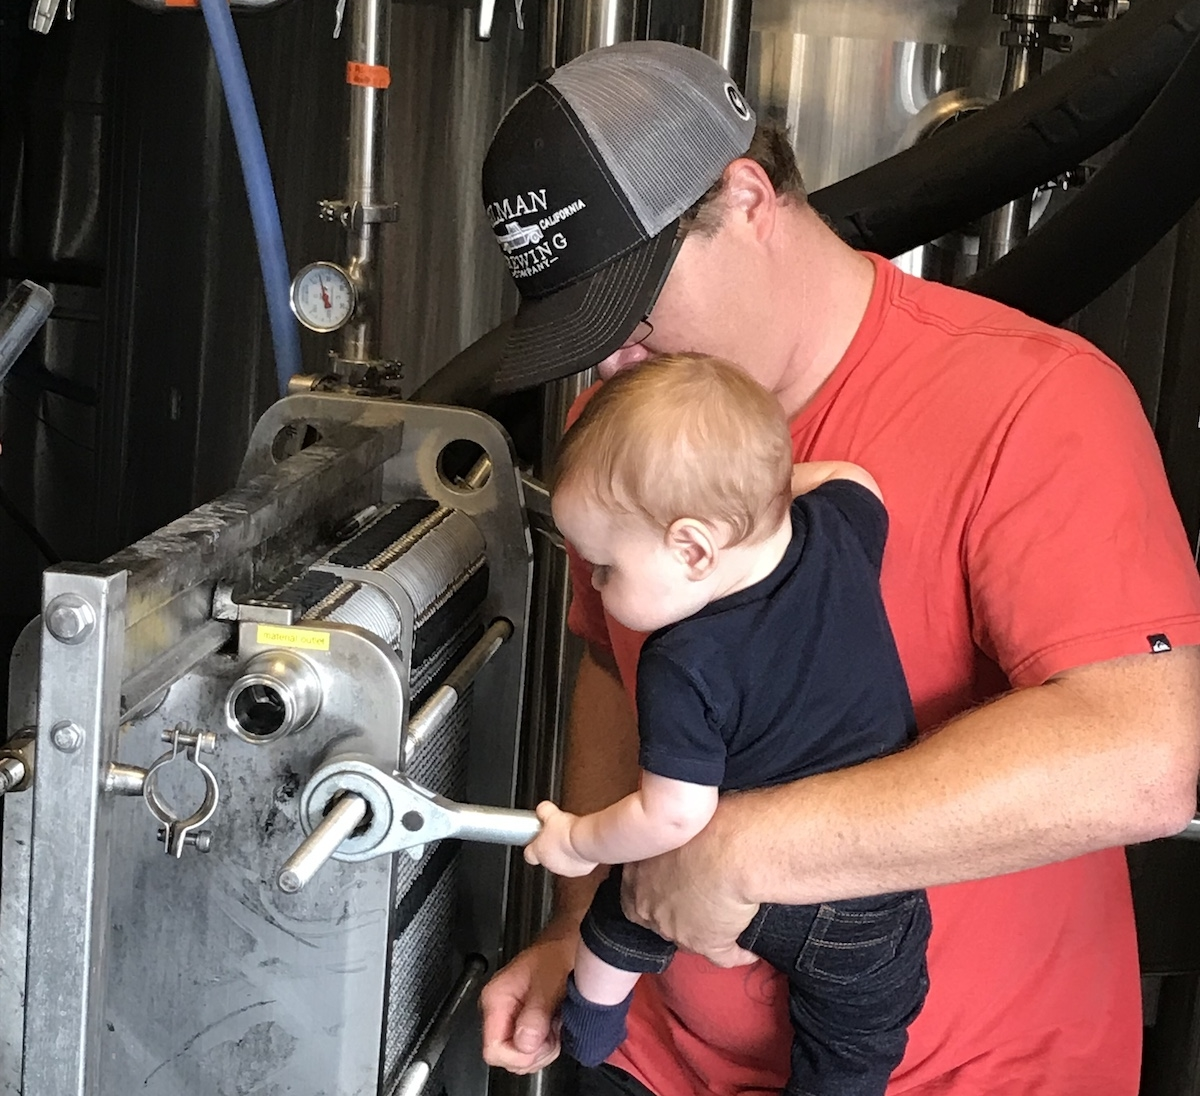 Gilman Brewing Co. owner Sean Wells with his son. Photo courtesy Sean Wells